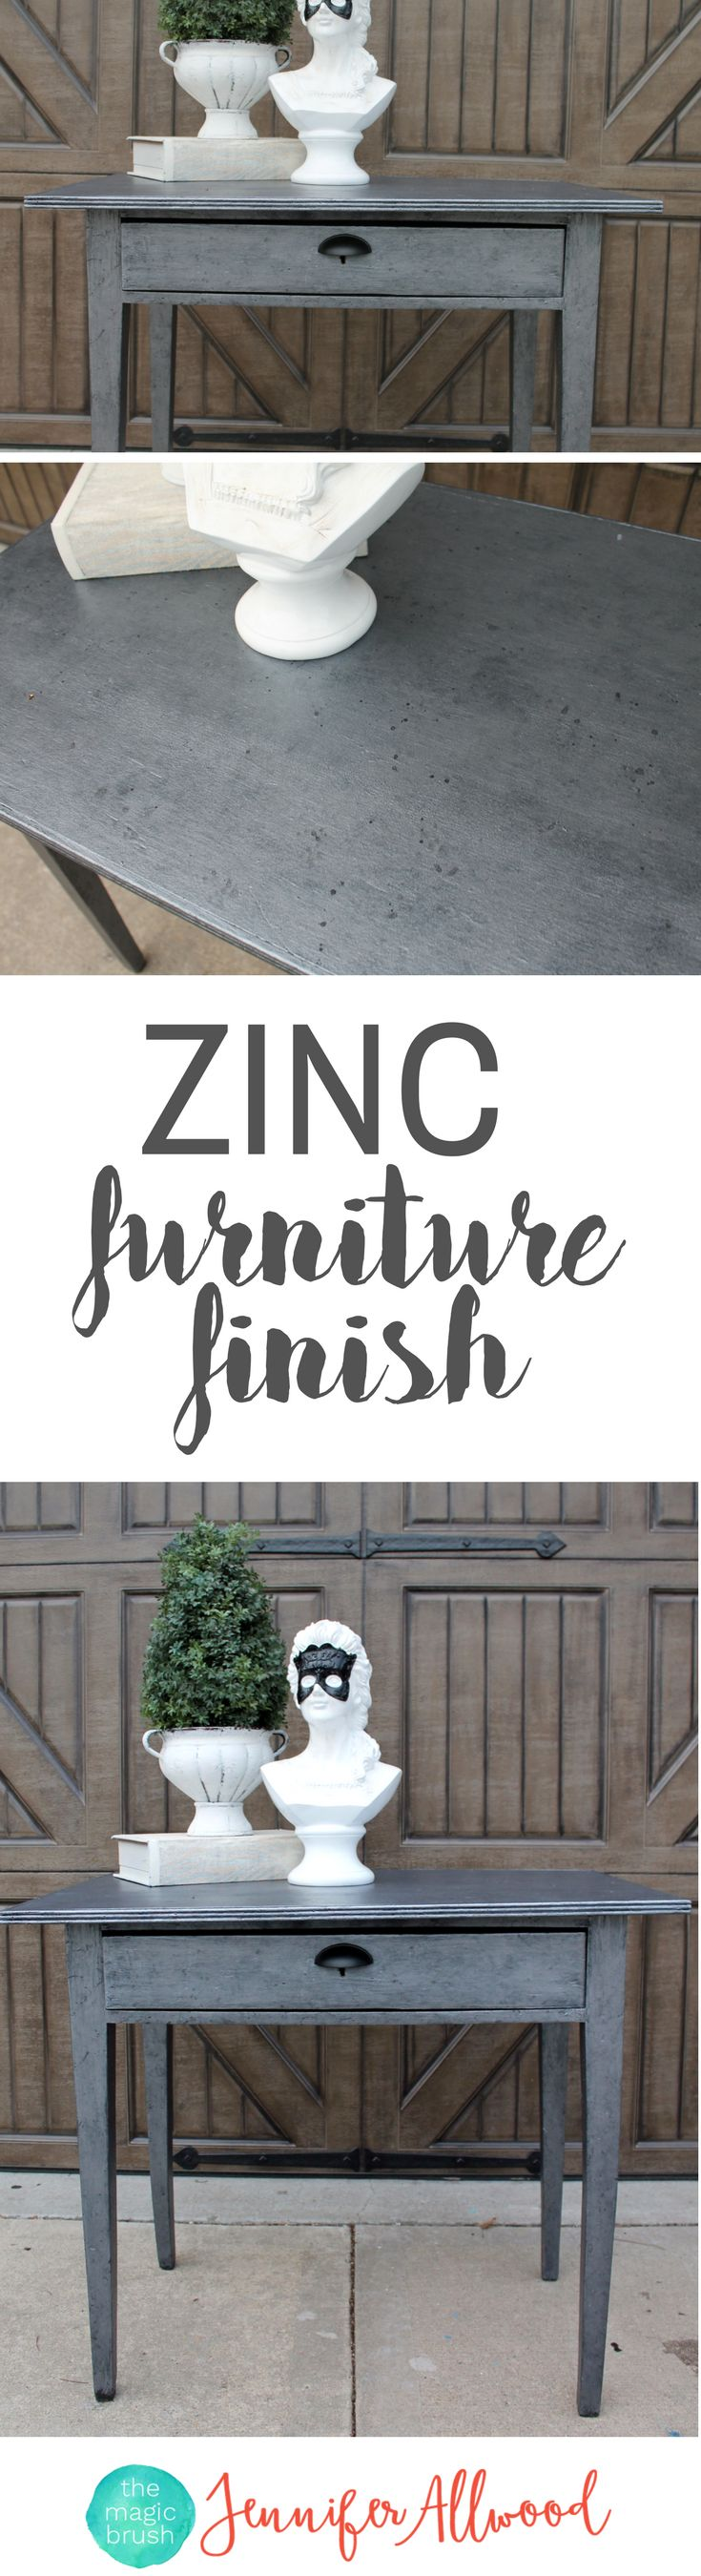 How to paint a Zinc Furniture Finish | Silver Painted Furniture Ideas | DIY Furniture Finish | Restoration Hardware inspired faux zinc finish | Furniture Painting Tutorials and DIY Video by MagicBrushinc.com